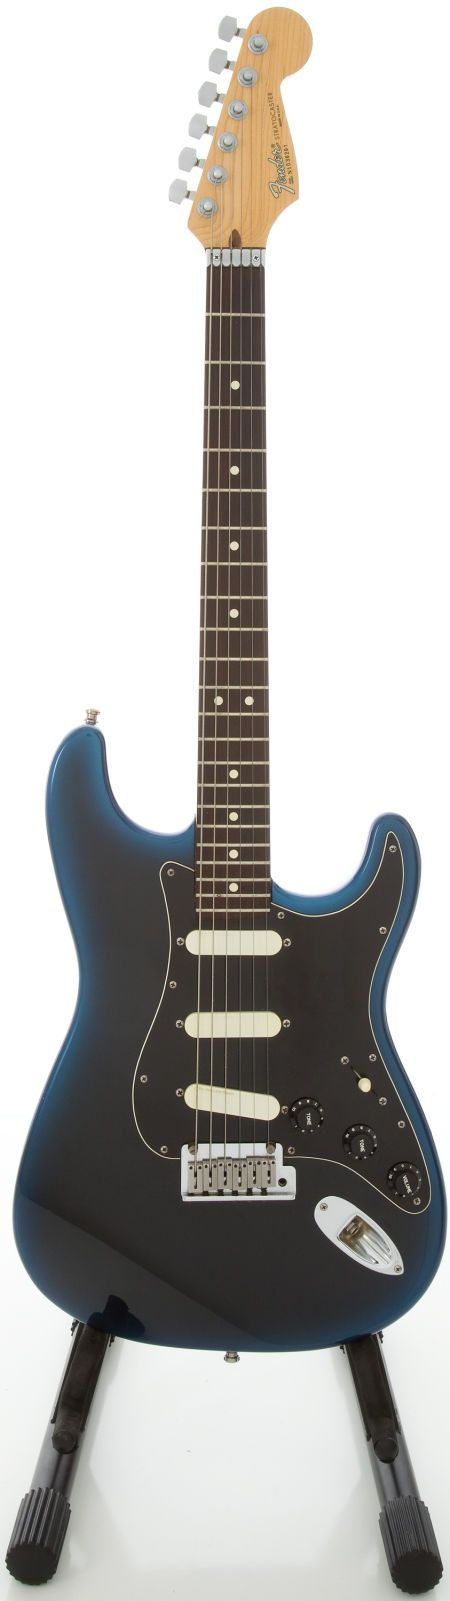 1224 best fender custom shop and artist series guitars and other 1991 fender stratocaster plus blueburst publicscrutiny Images